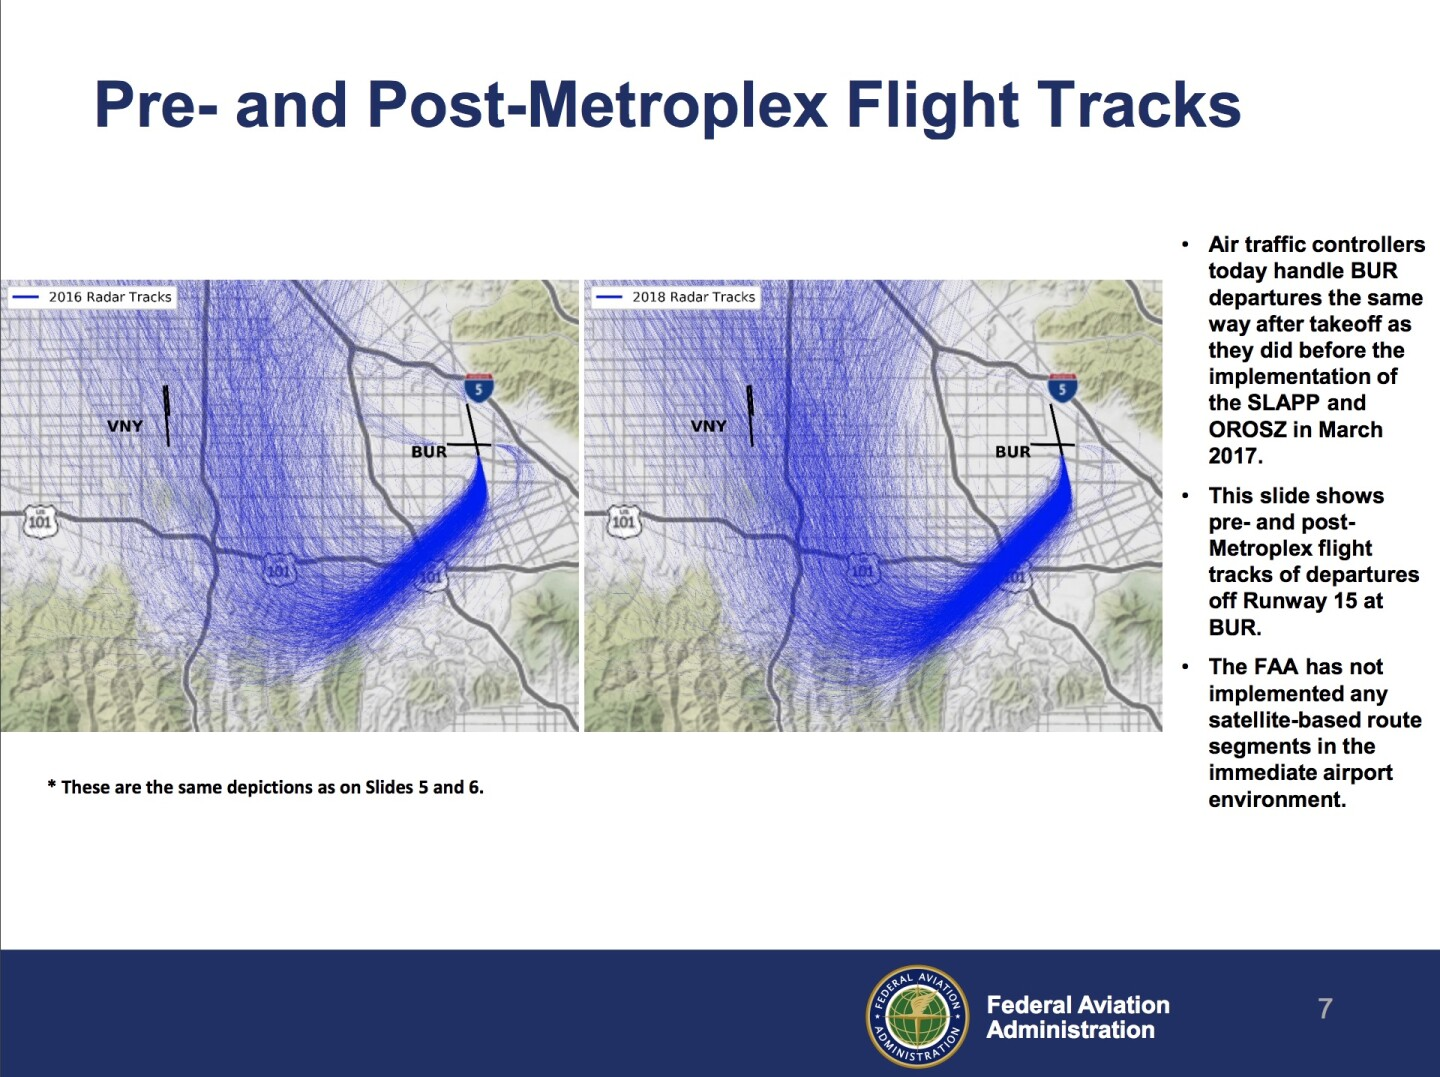 Graphic of Pre and Post Metroplex Flights released by FAA